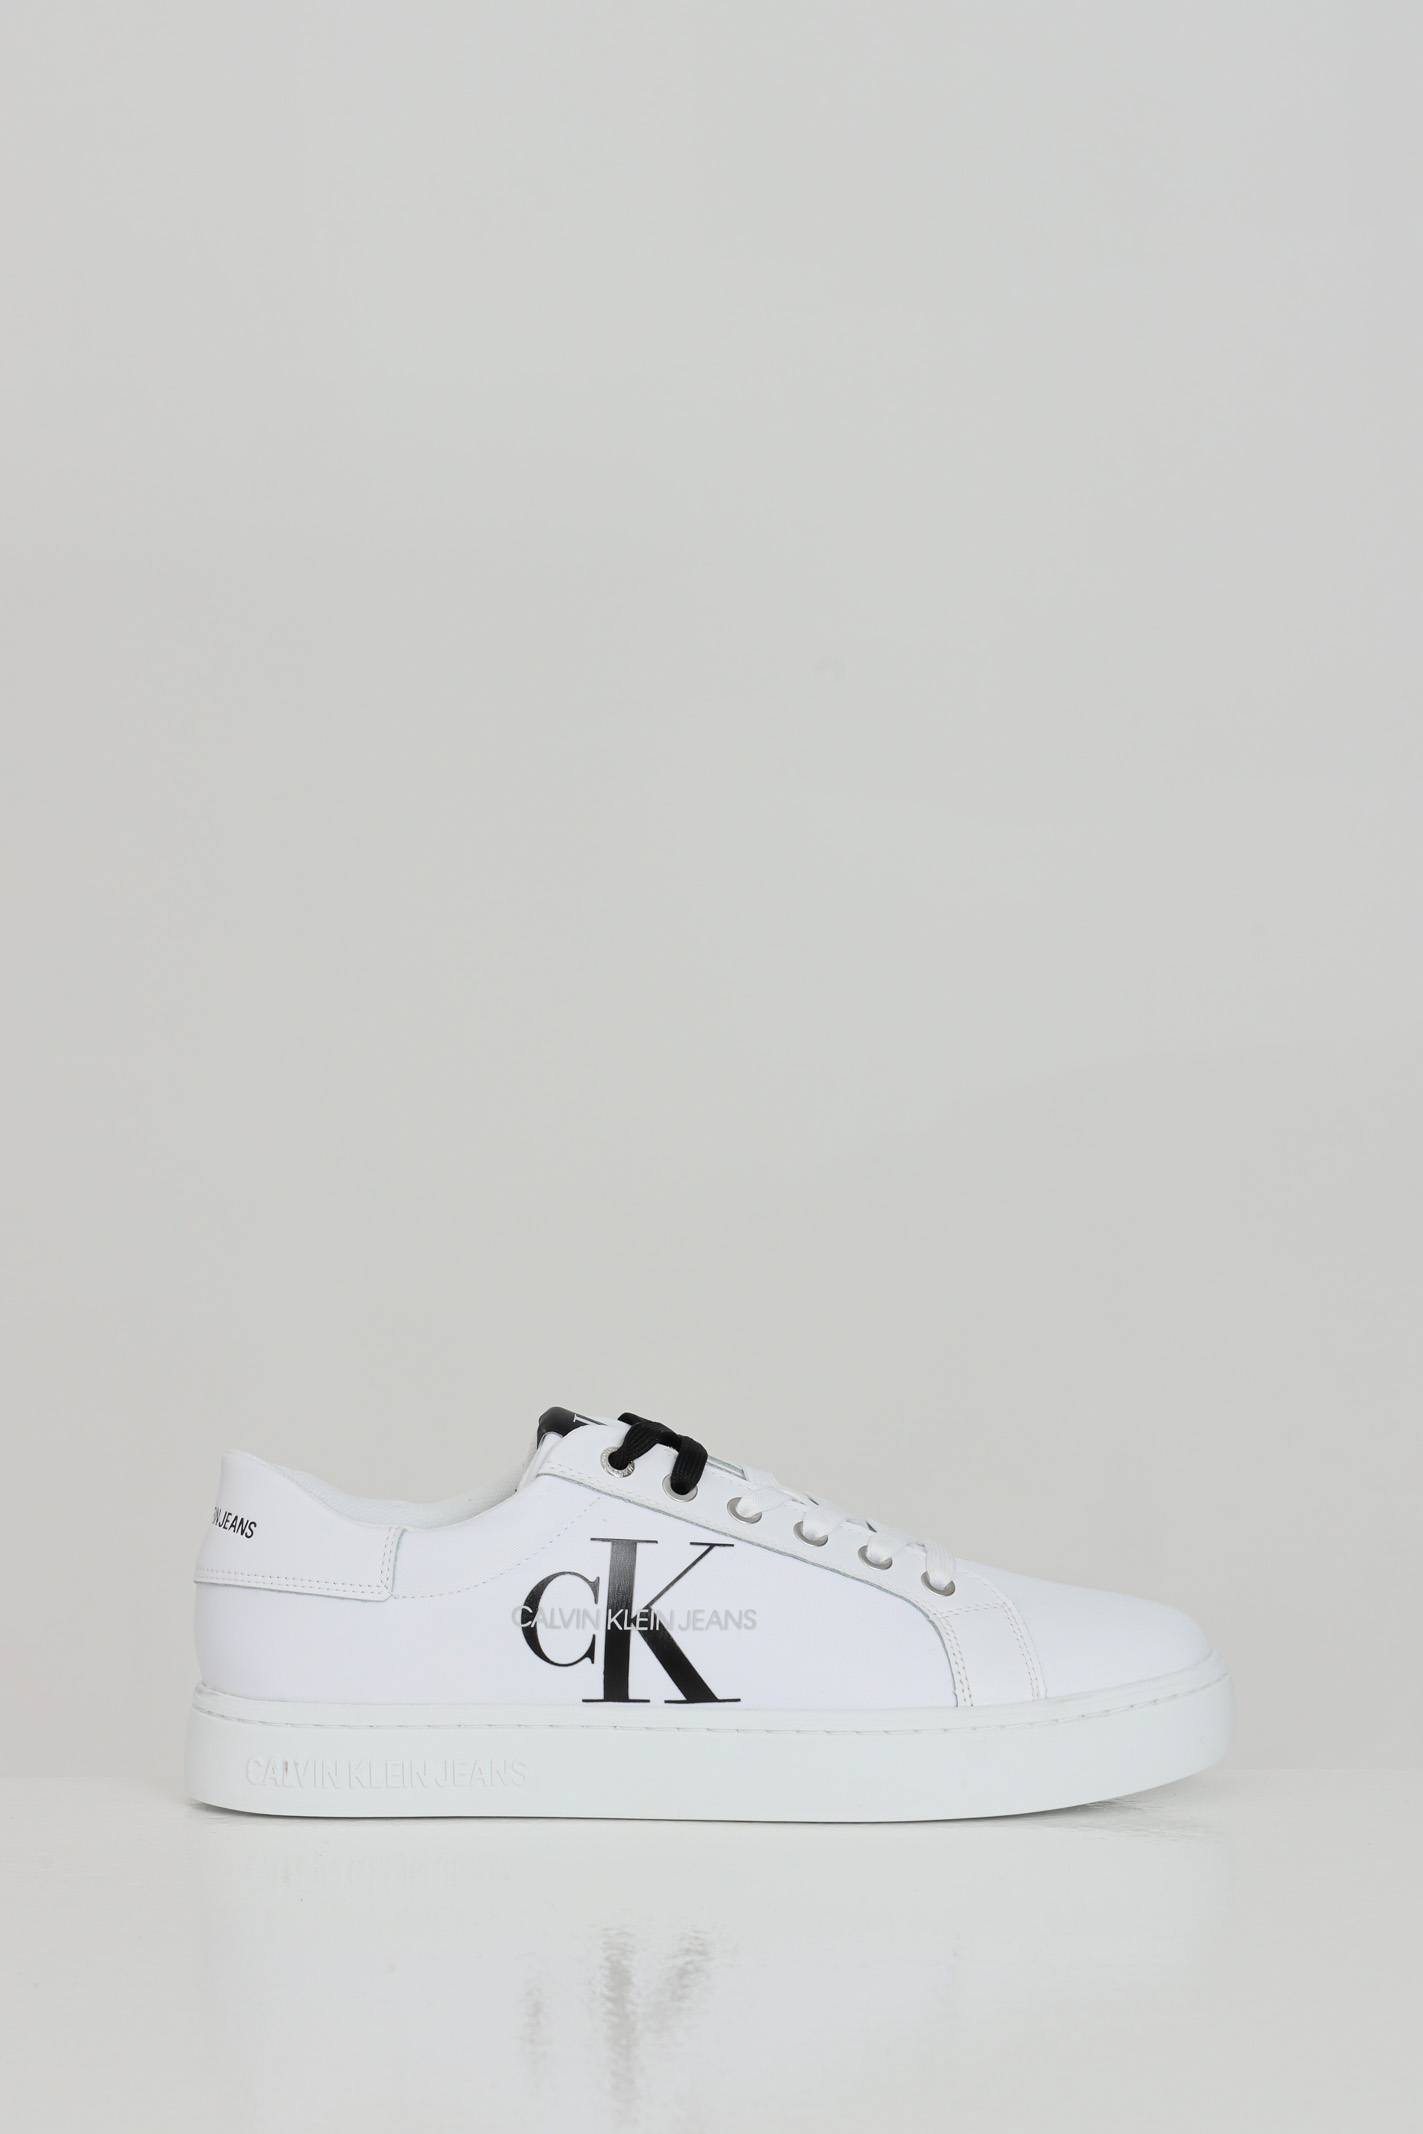 Calvin Klein SNEAKERS WHITE LACEUP BDS